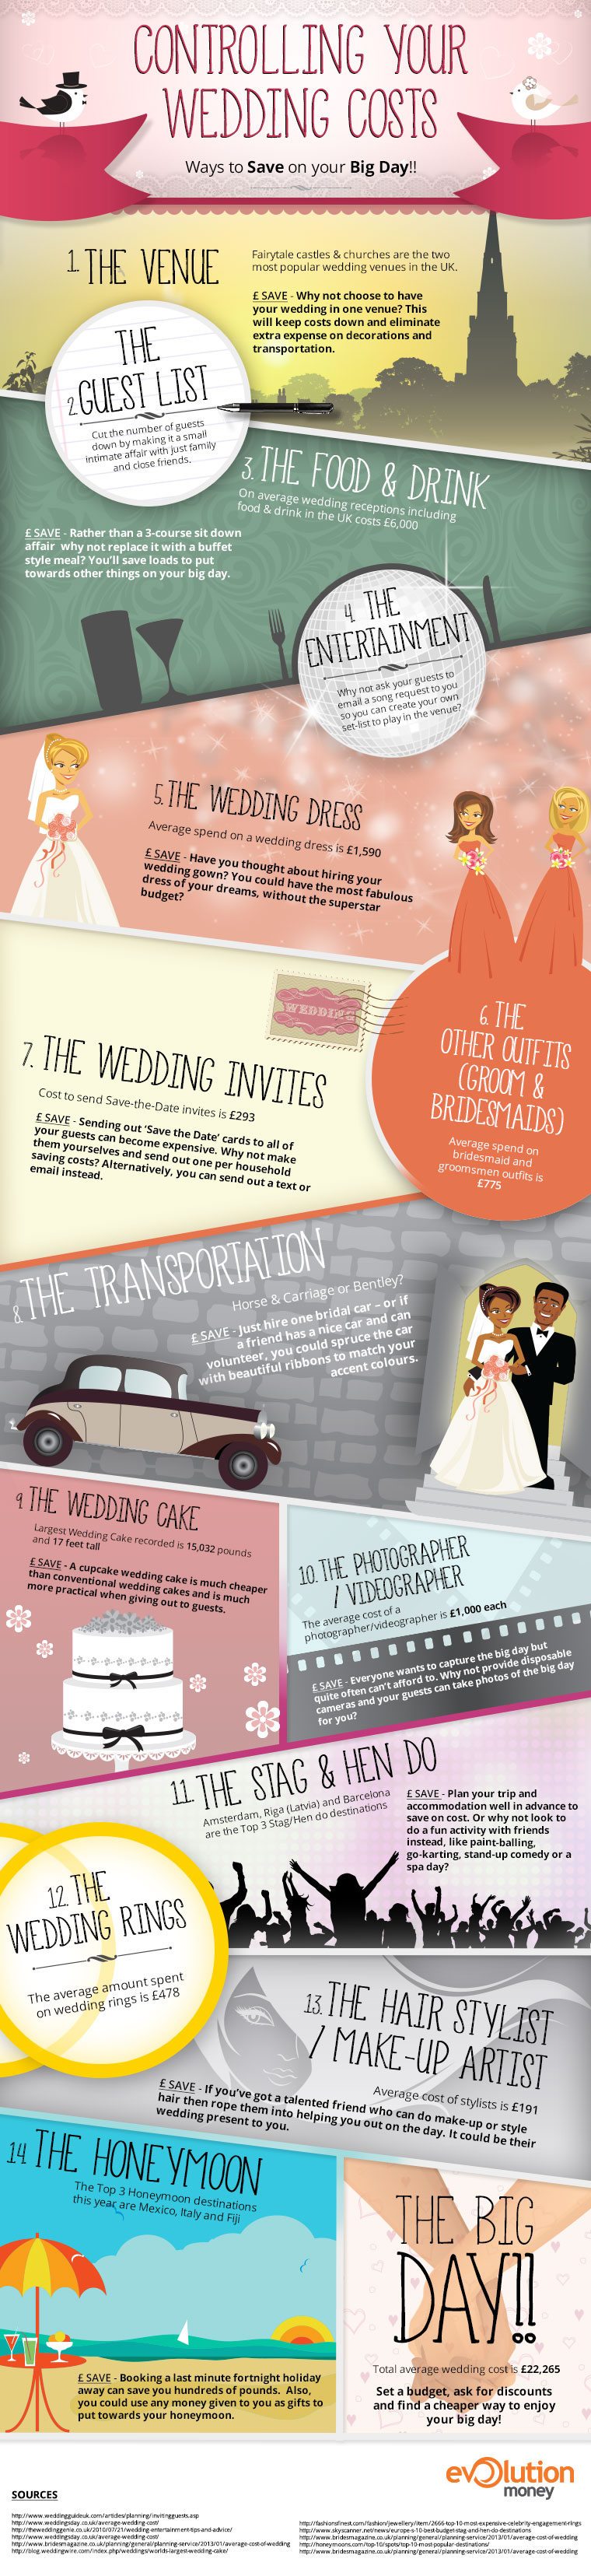 Helpful Tips for Controlling Wedding Costs